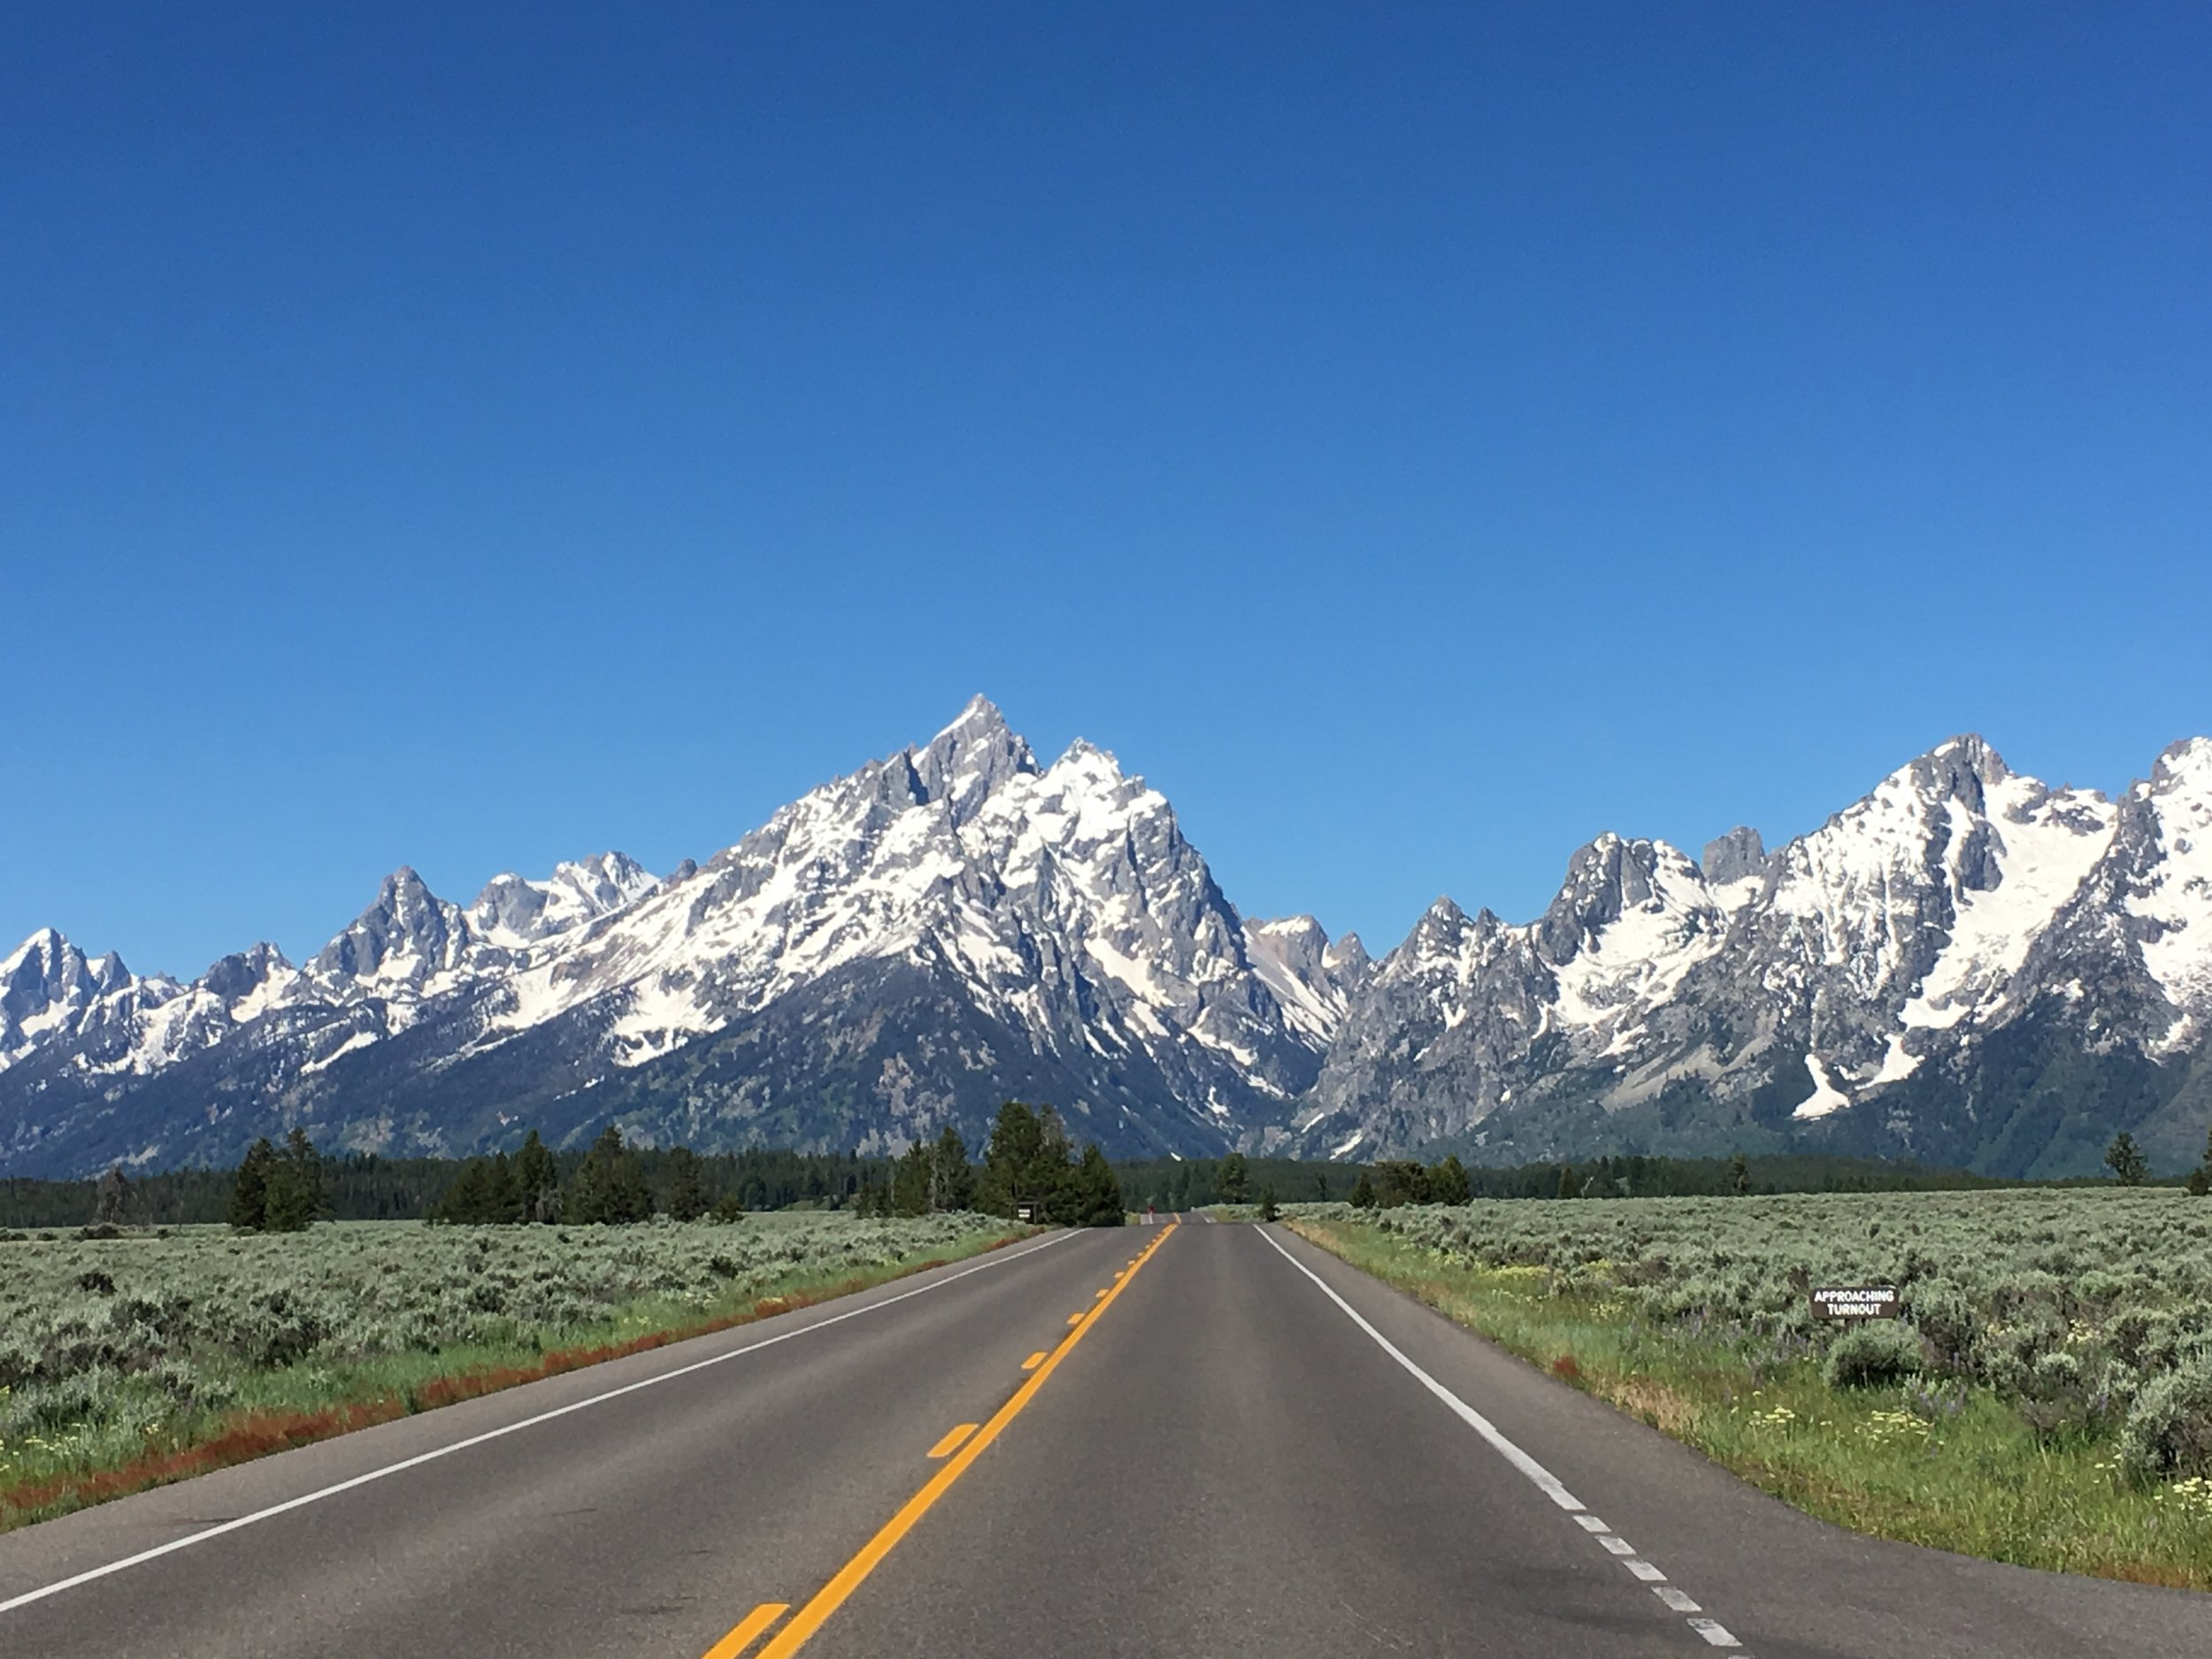 The road to the Grand Teton National Park